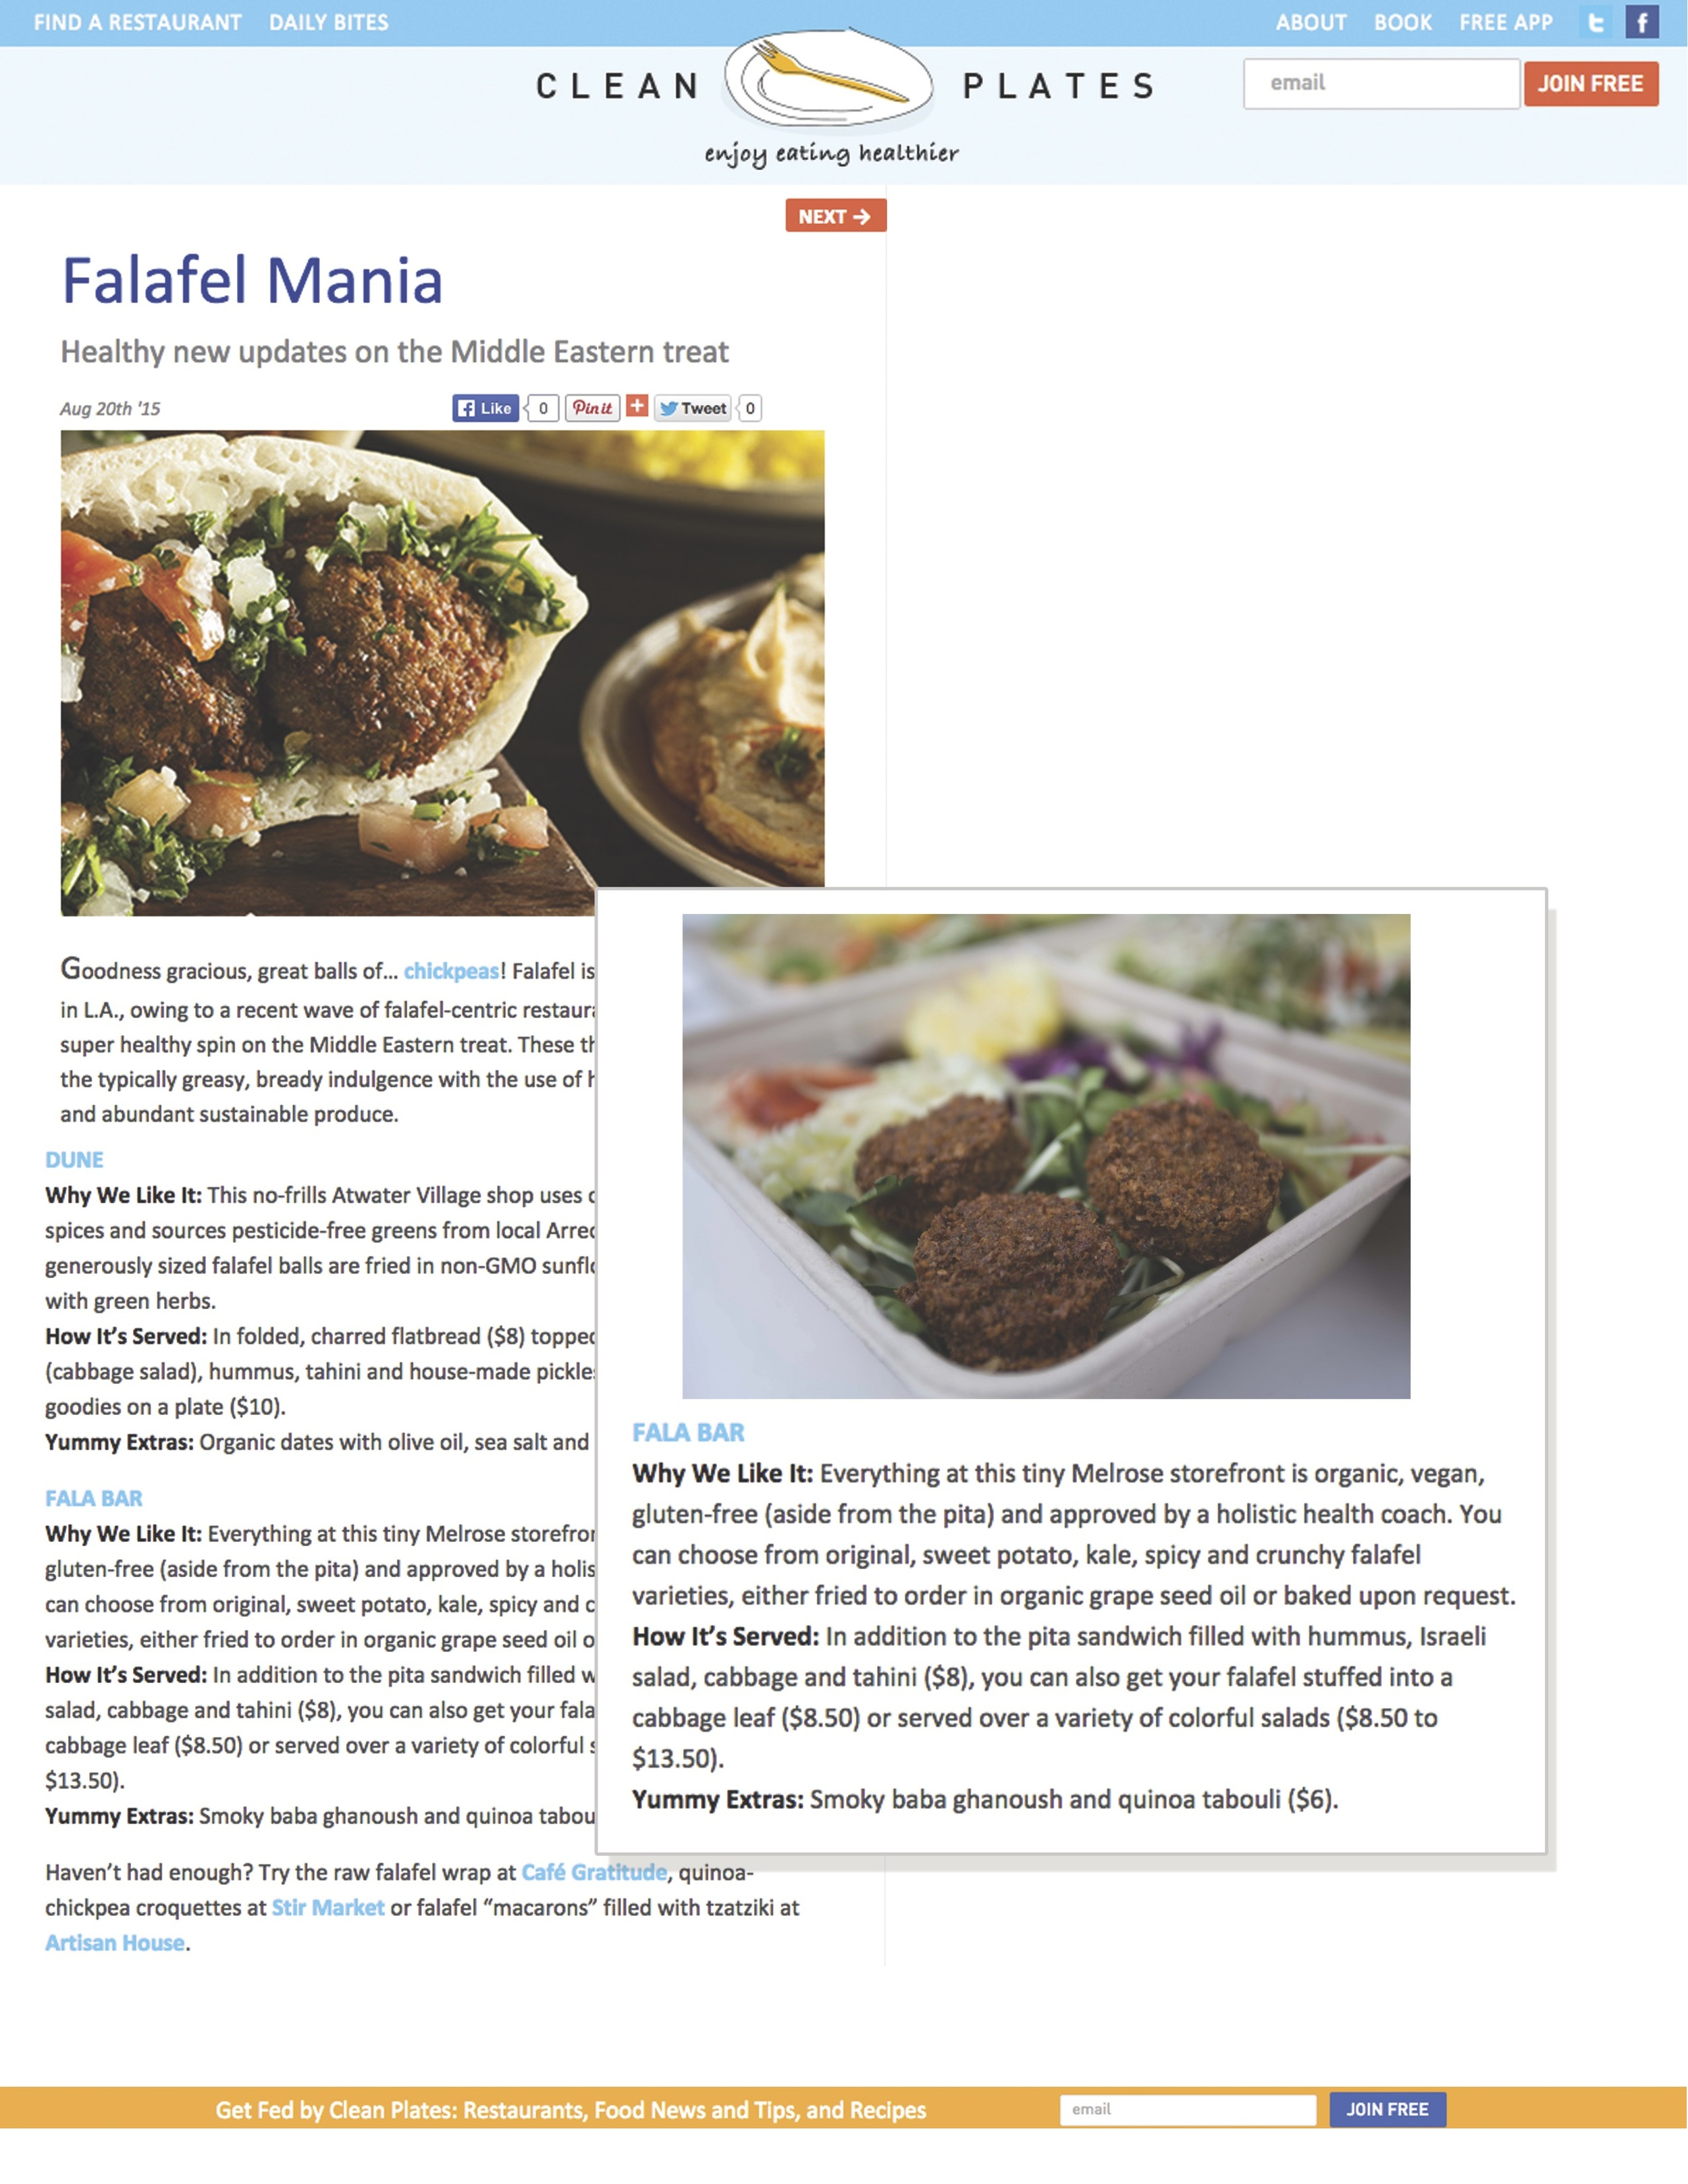 Report about Fala Bar / Clean Plates